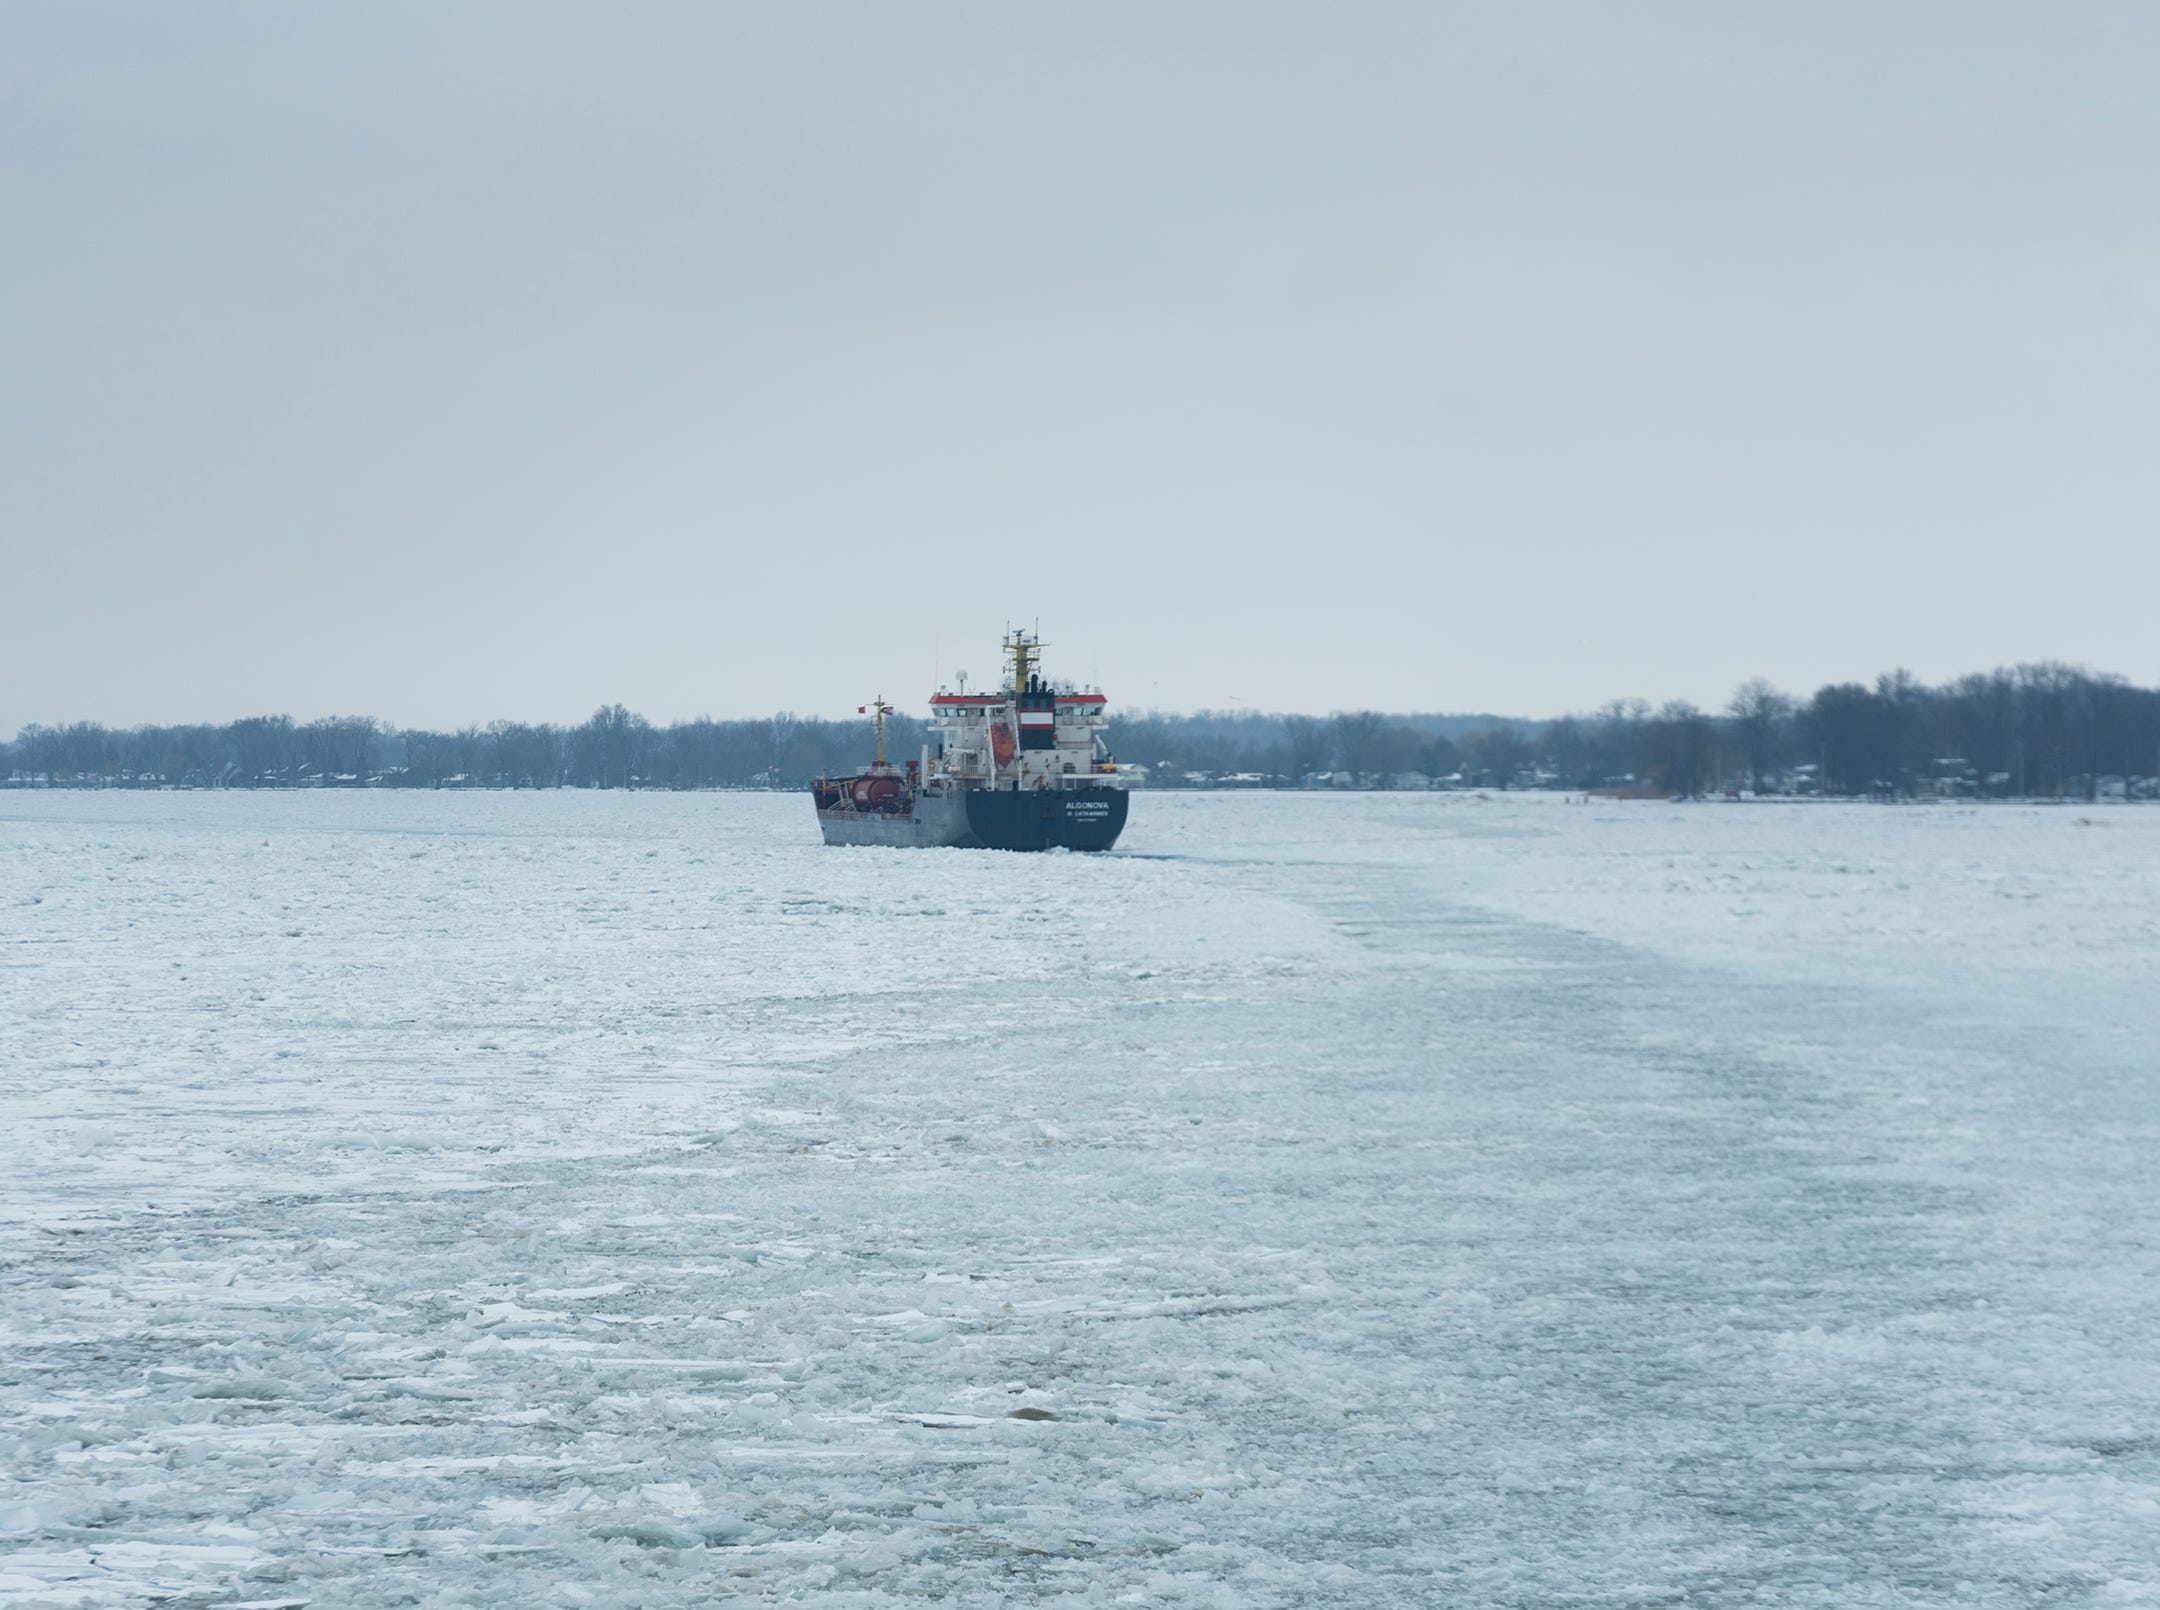 The USCGC Hollyhock follows the Algonova upbound on the St. Clair River Wednesday, Feb. 20, 2019, near Algonac. The Hollyhock, together with the USCGC Bristol Bay, escorted the nearly 430-foot freighter through an ice jam that had formed near Algonac.